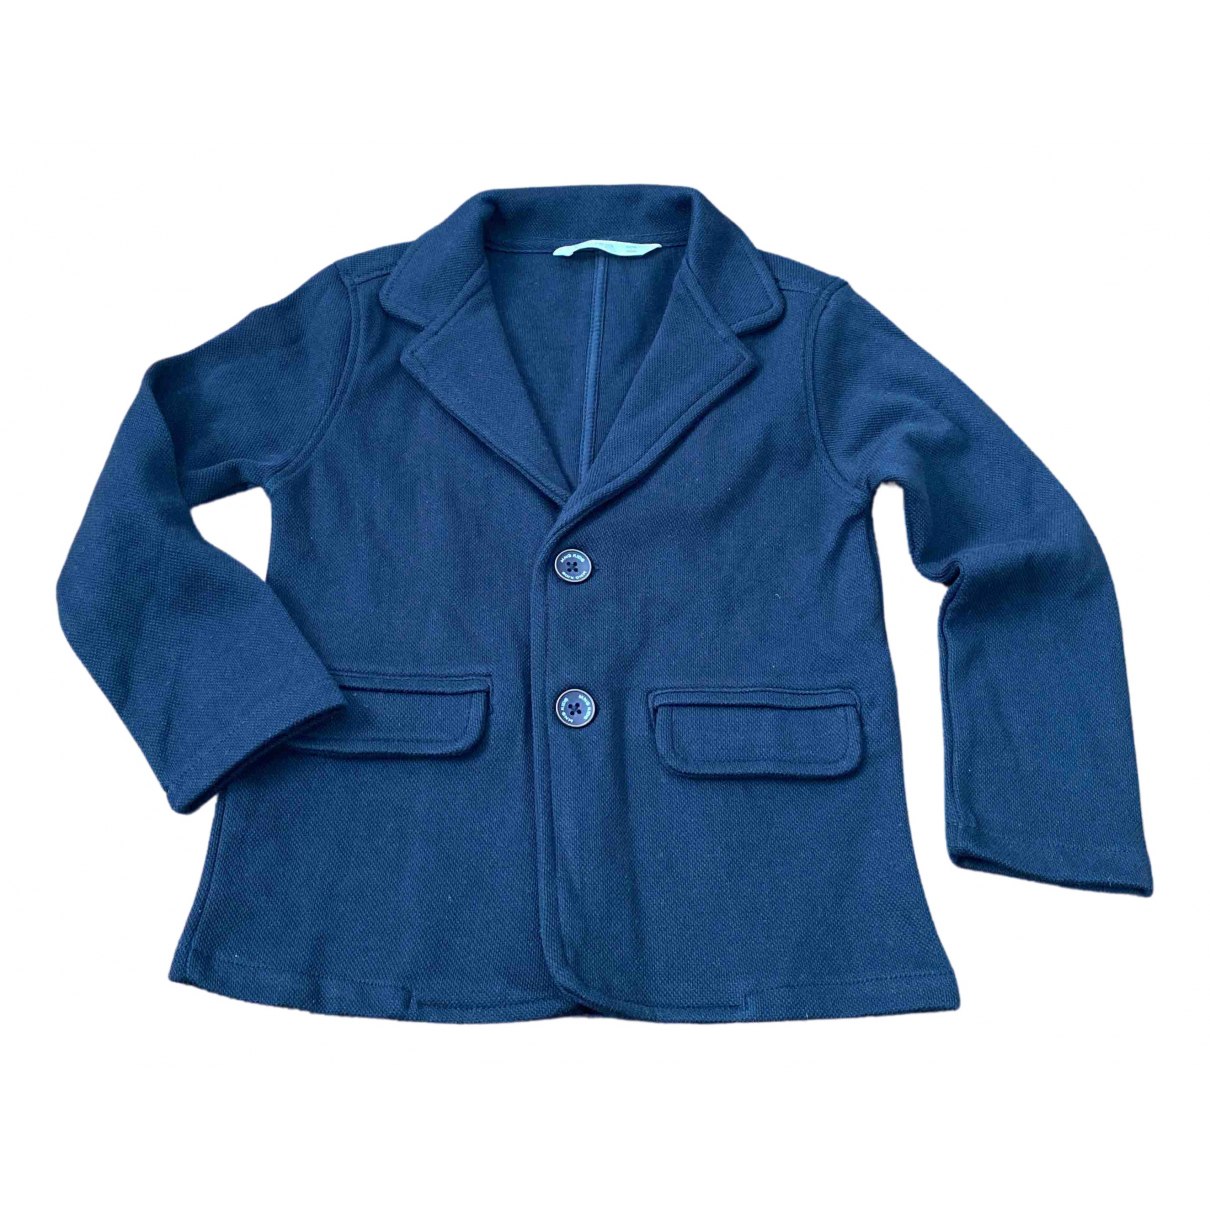 Mango \N Blue Cotton jacket & coat for Kids 6 years - until 45 inches UK